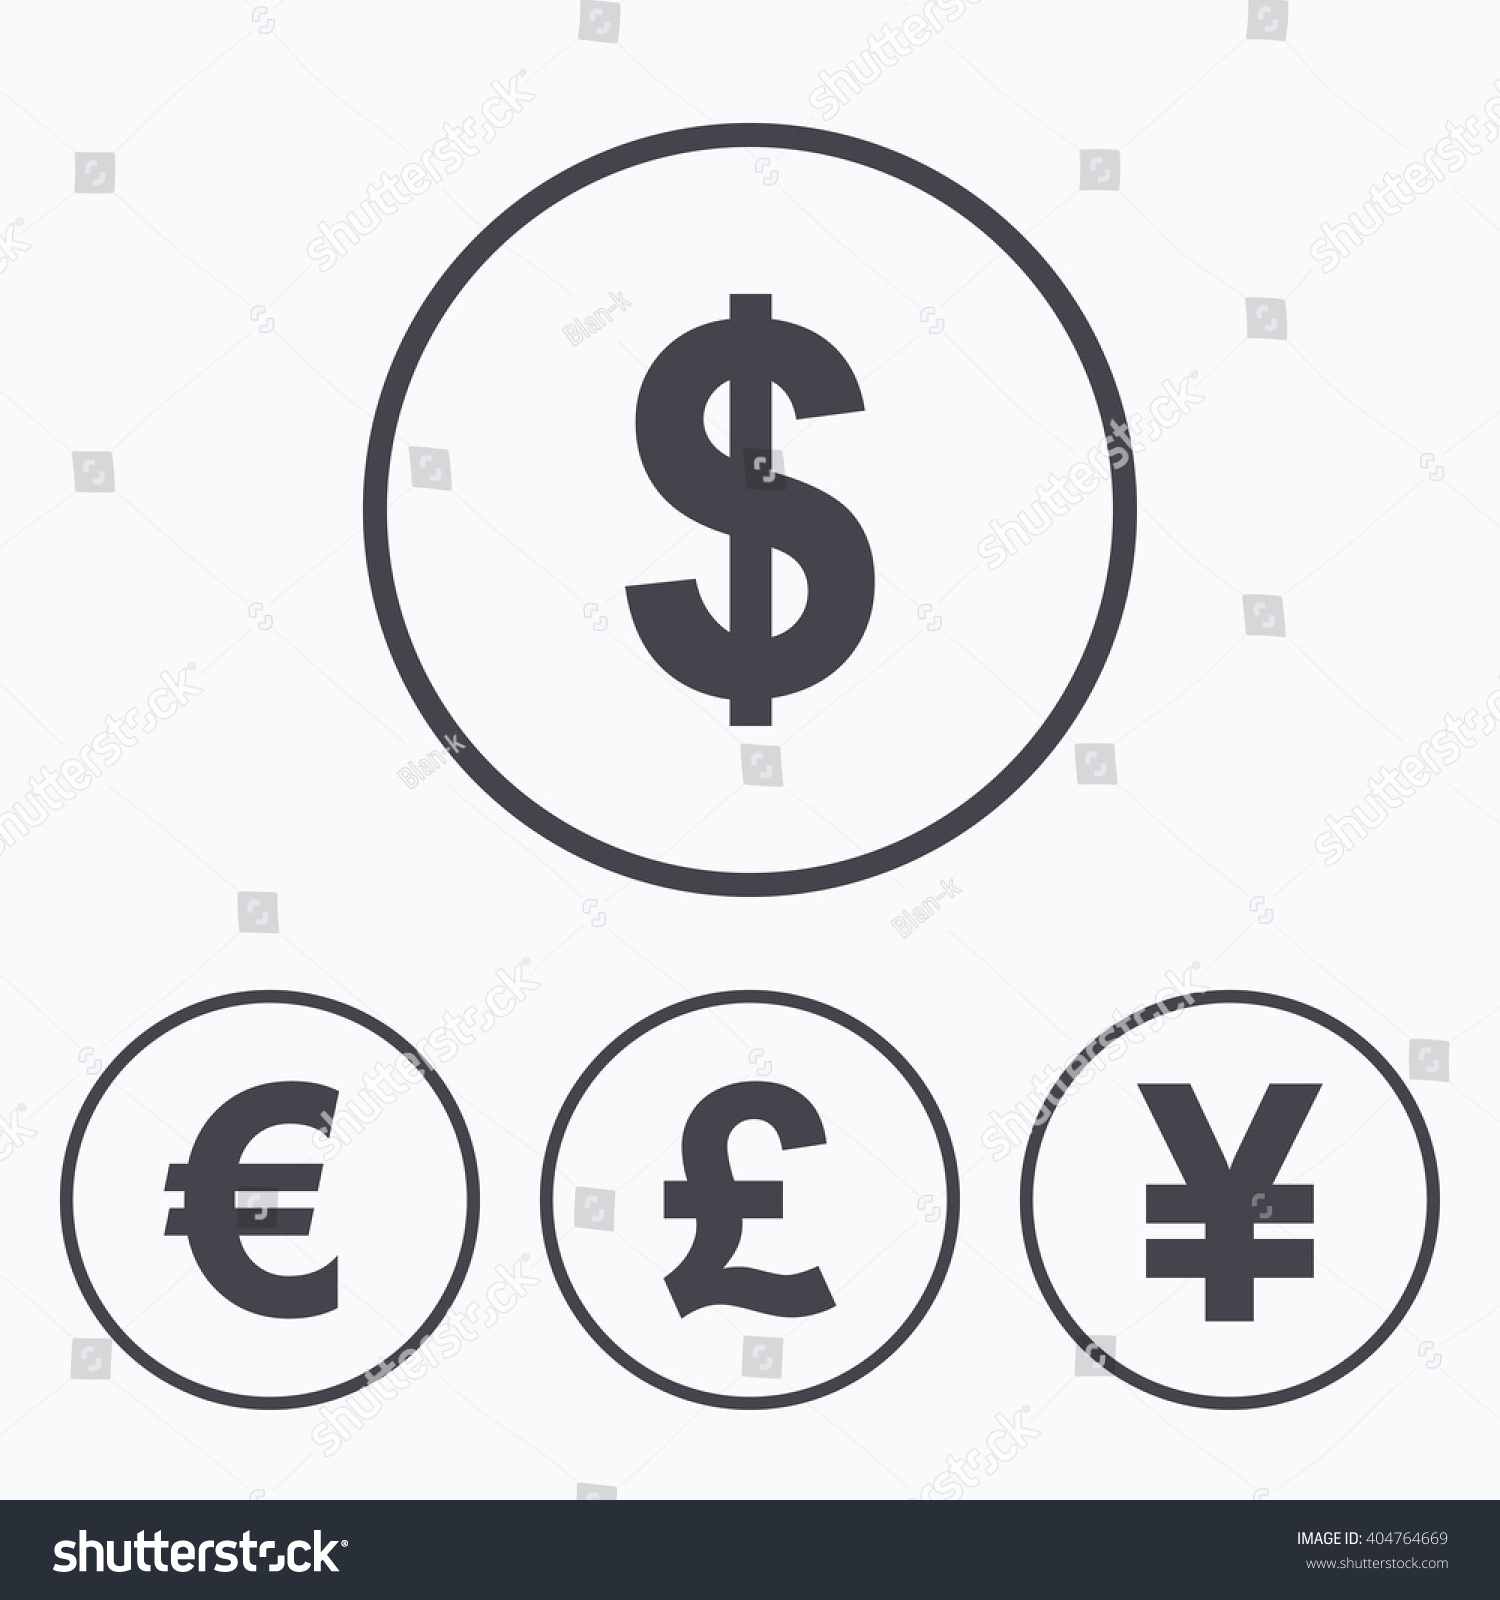 Dollar euro pound yen currency icons stock illustration 404764669 dollar euro pound and yen currency icons usd eur gbp and biocorpaavc Gallery